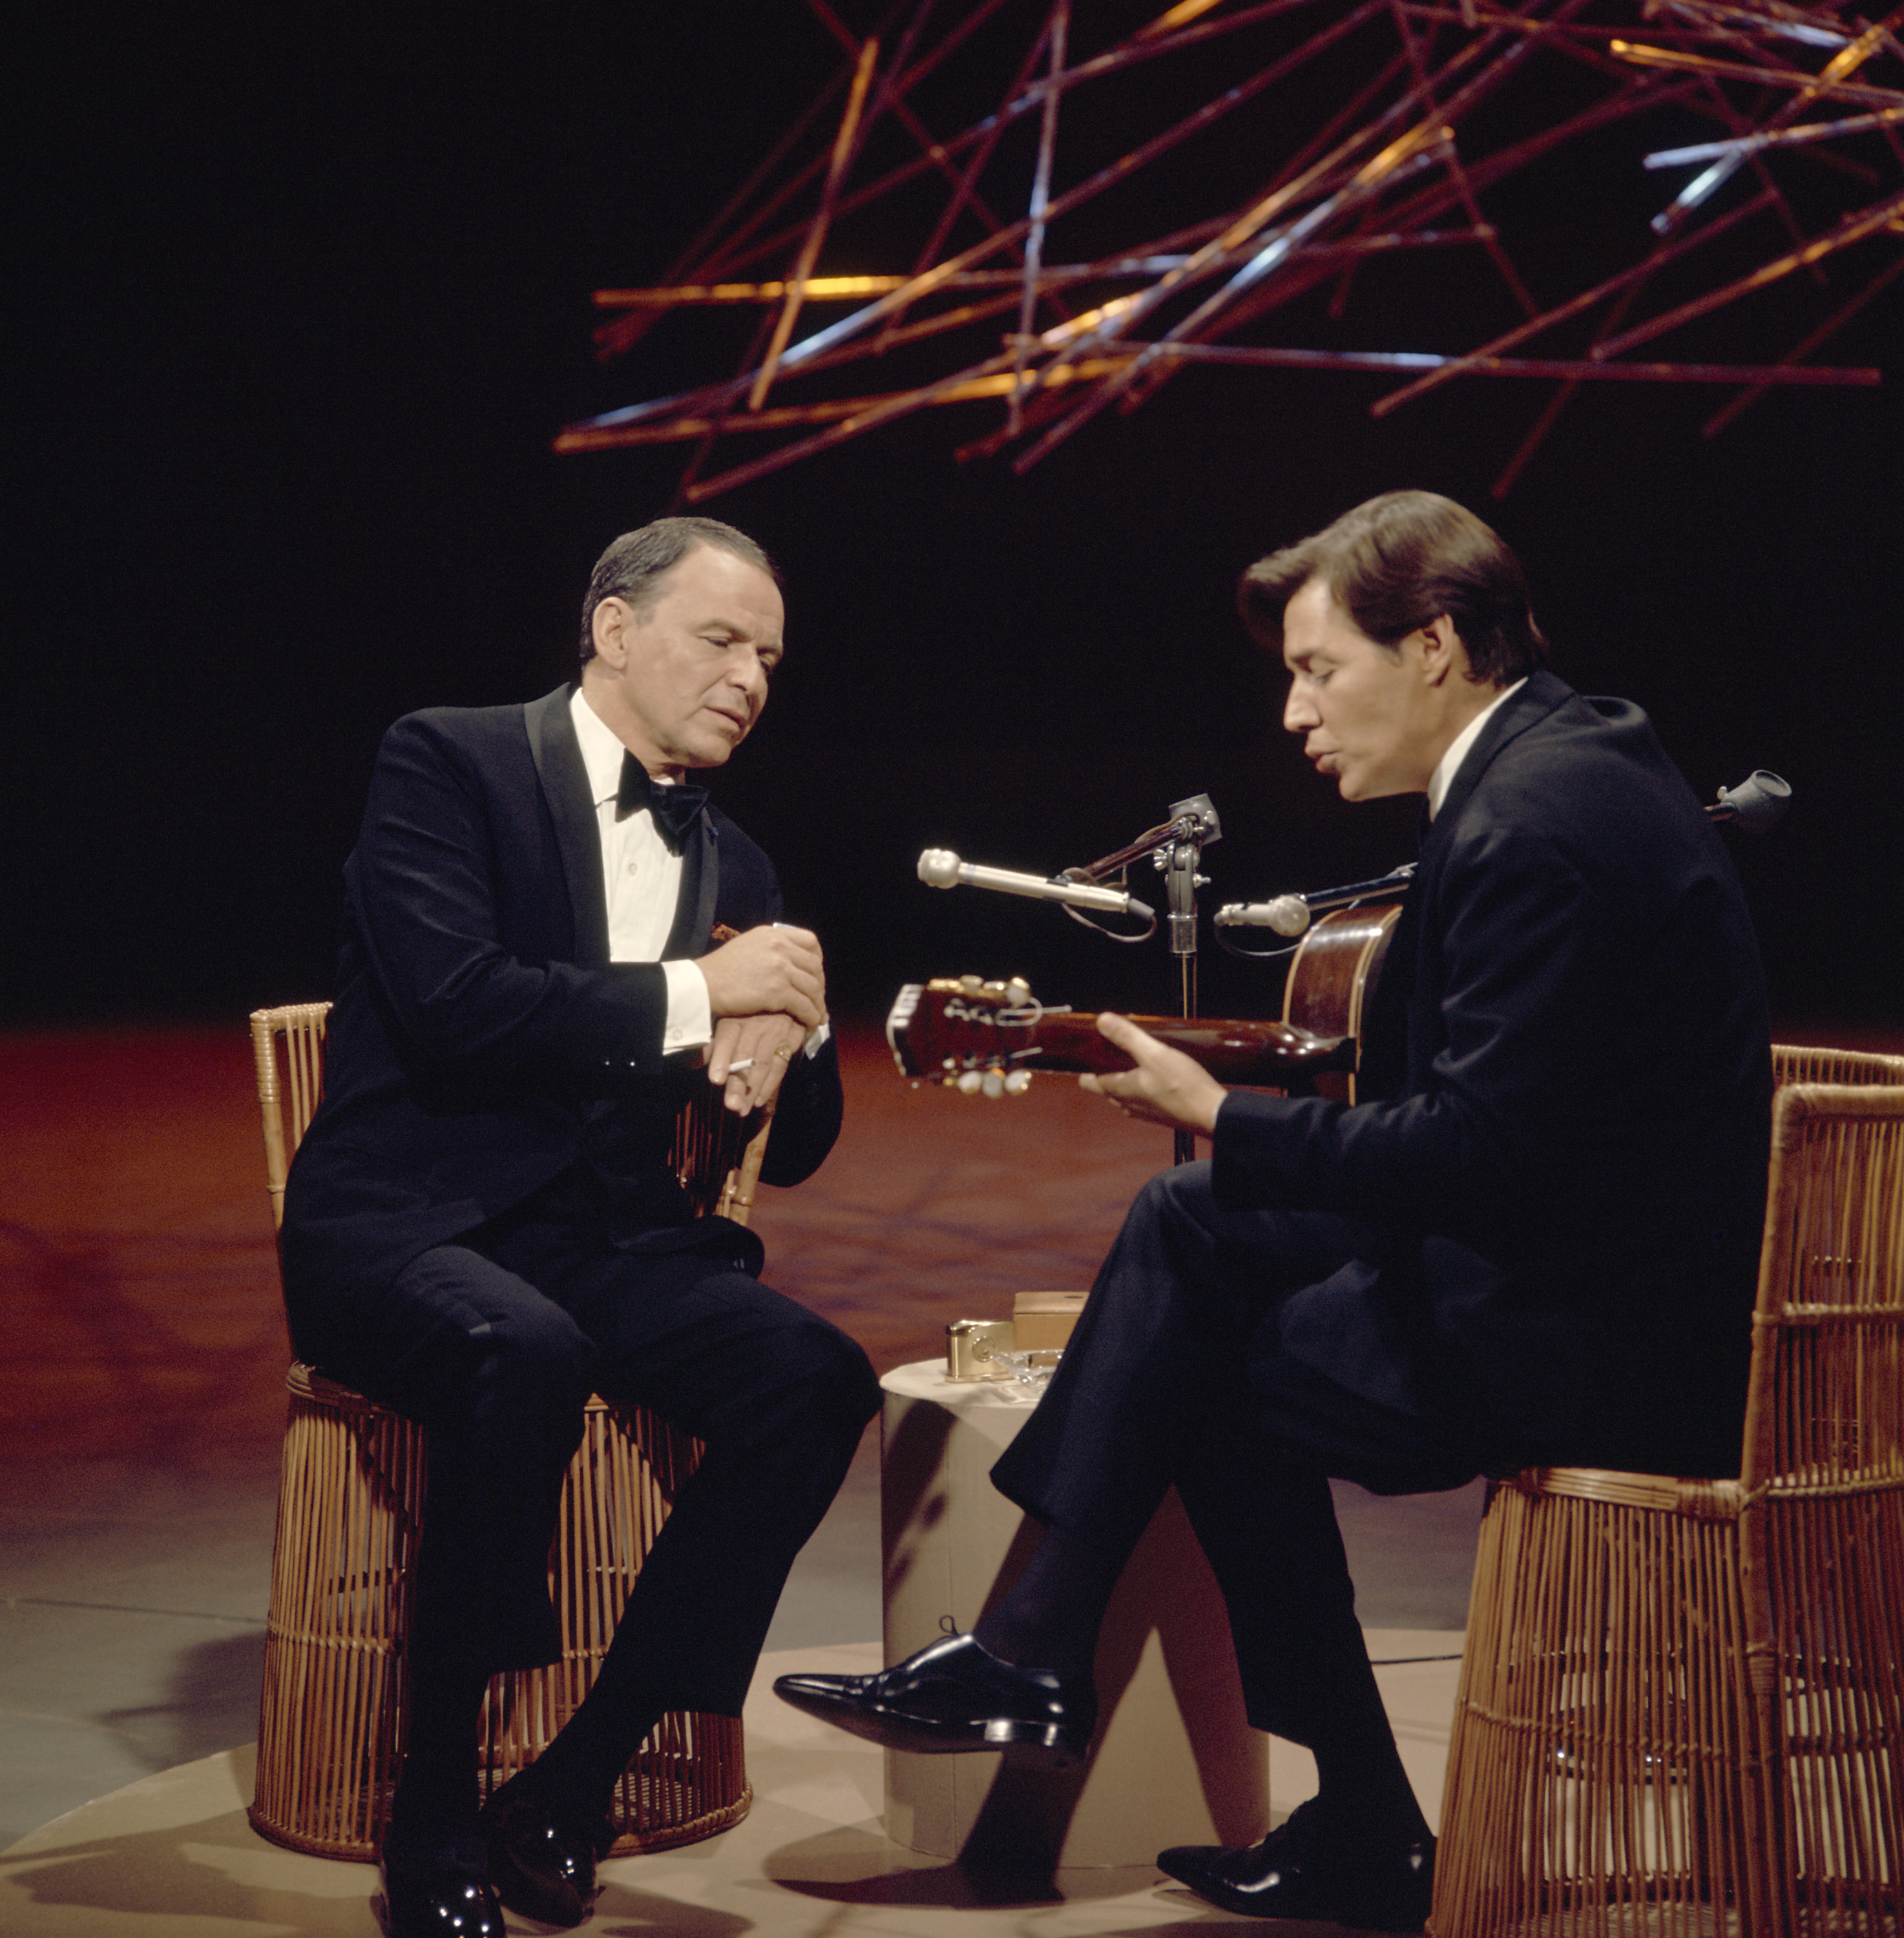 Caption: Frank Sinatra and Antonio Carlos Jobim on FRANK SINATRA: A MAN AND HIS MUSIC PART III -- Aired 11/13/1967, Credit: NBC/Getty